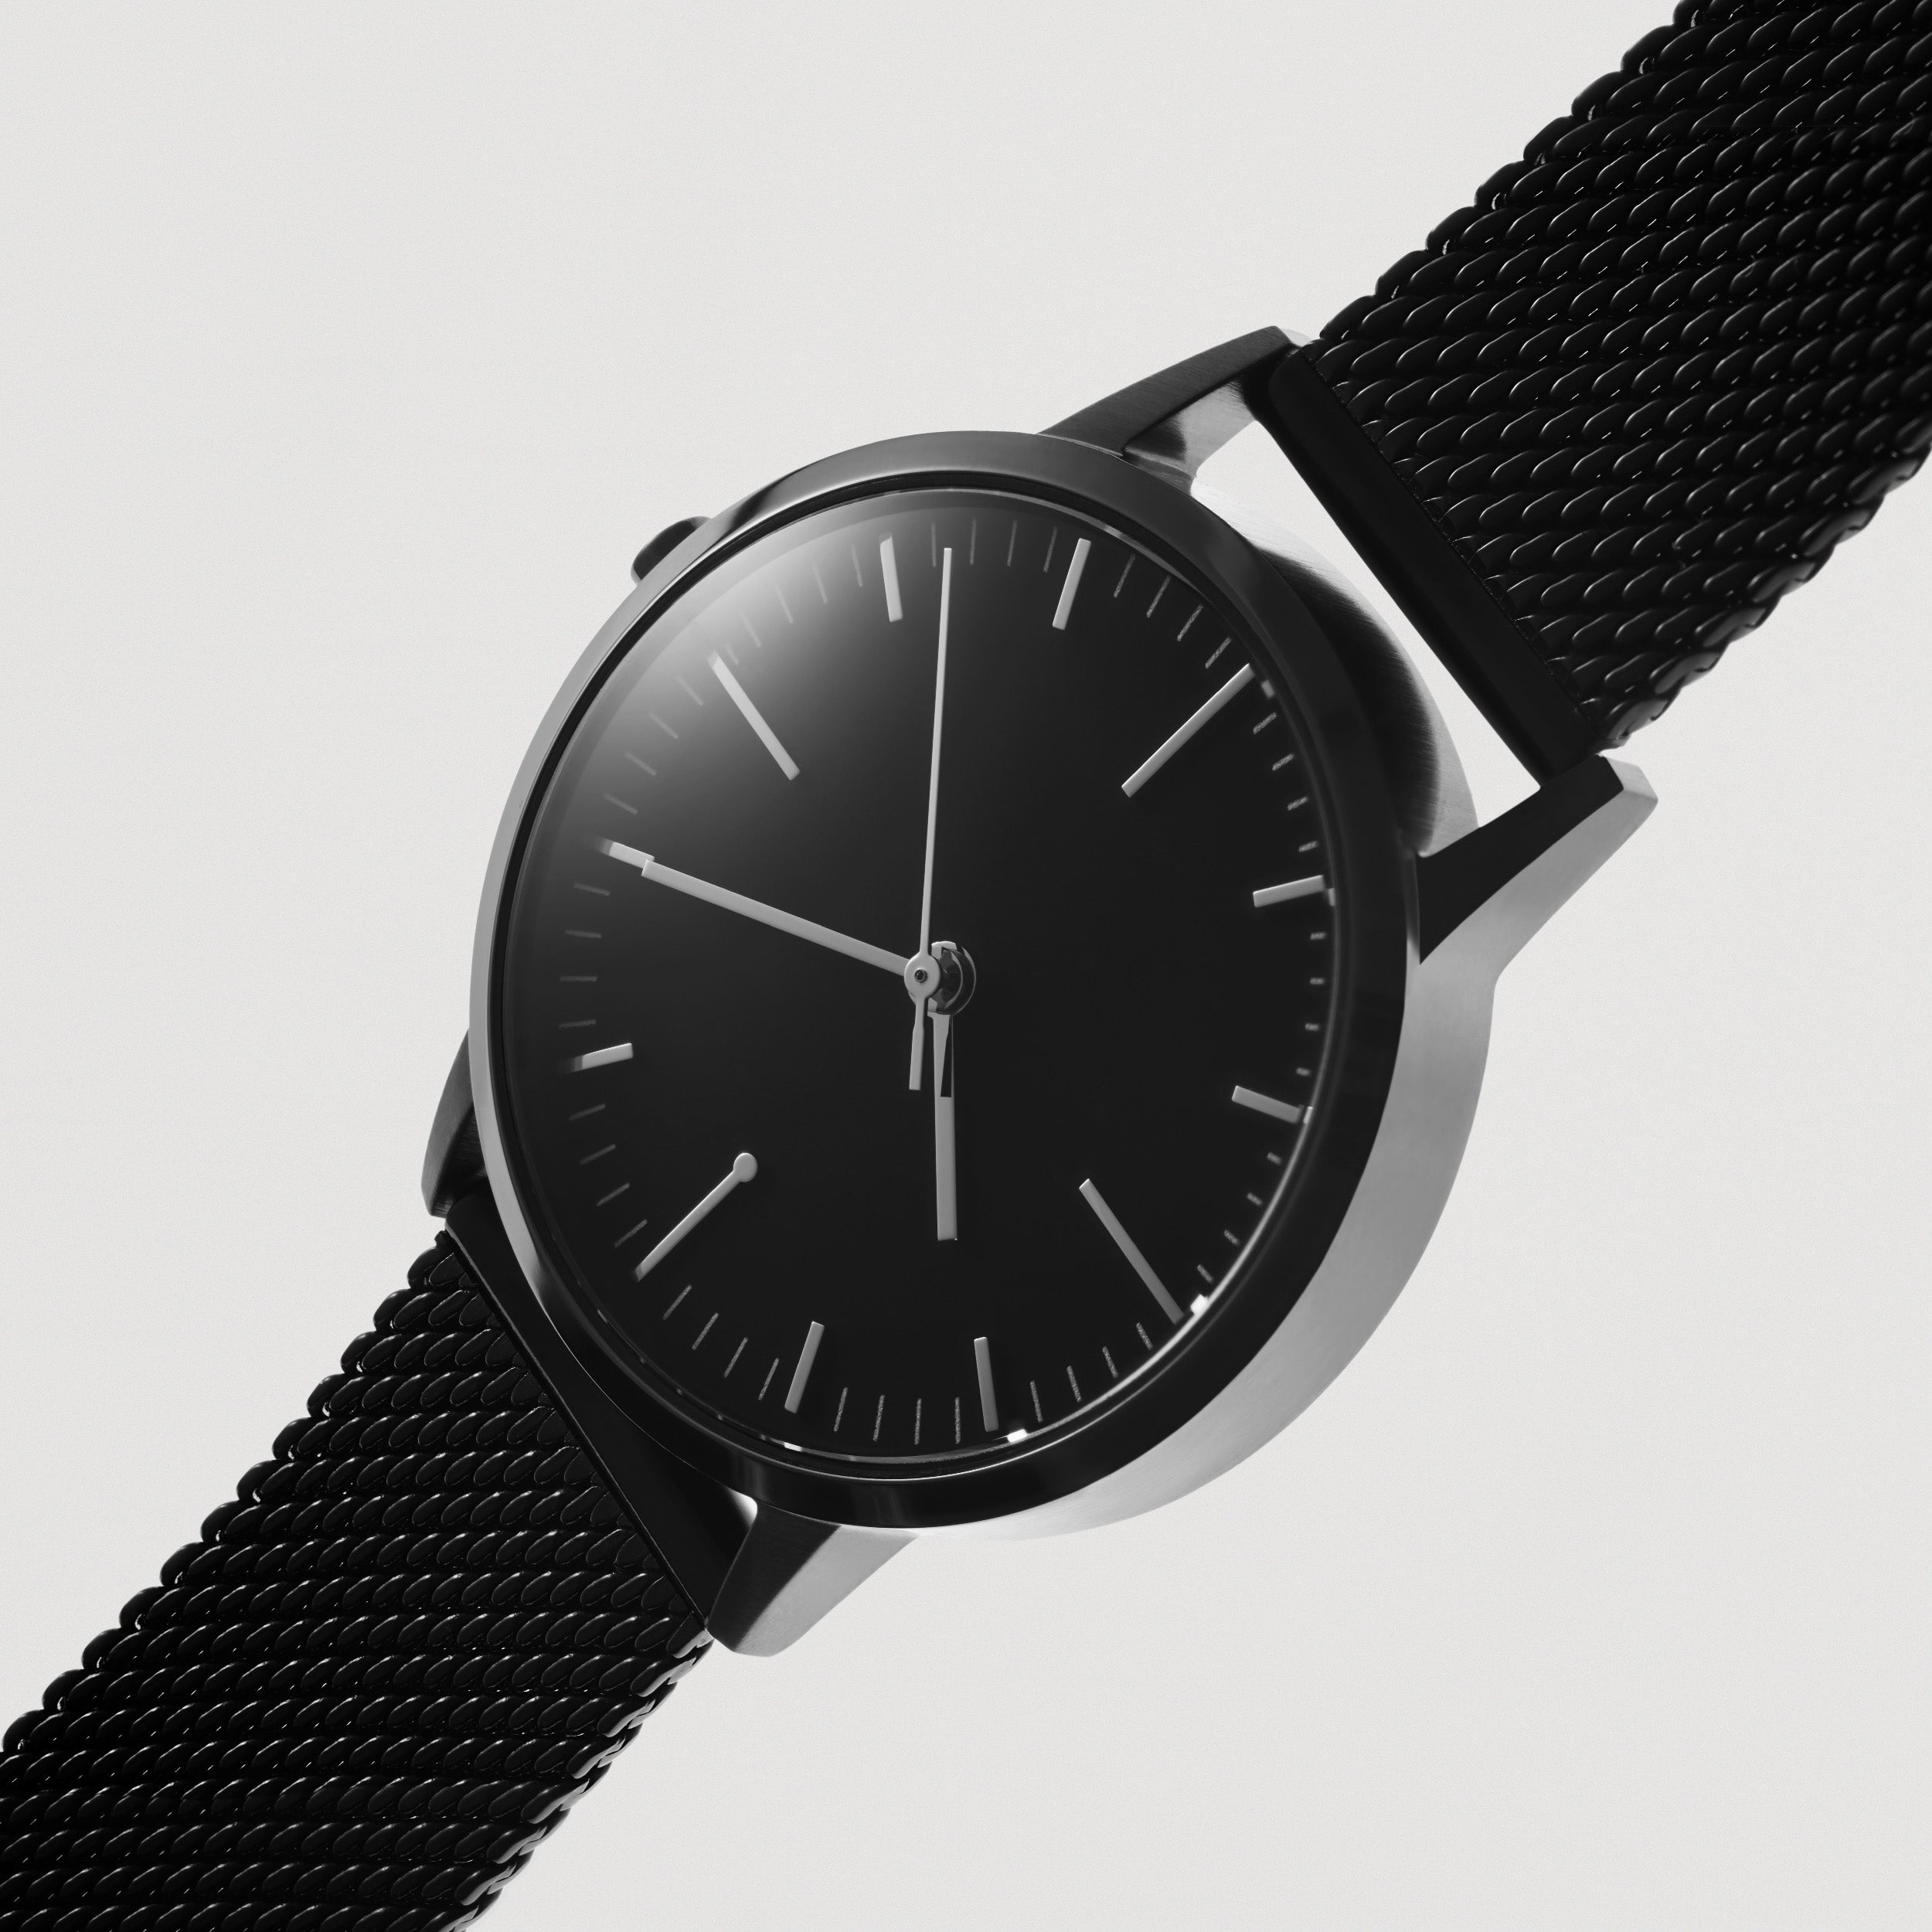 Ladies Watch Mesh Strap - All Black Watch - Simple Design - Black Mesh - UK - Under £100 - Freedom To Exist - Minimal Watches British Design